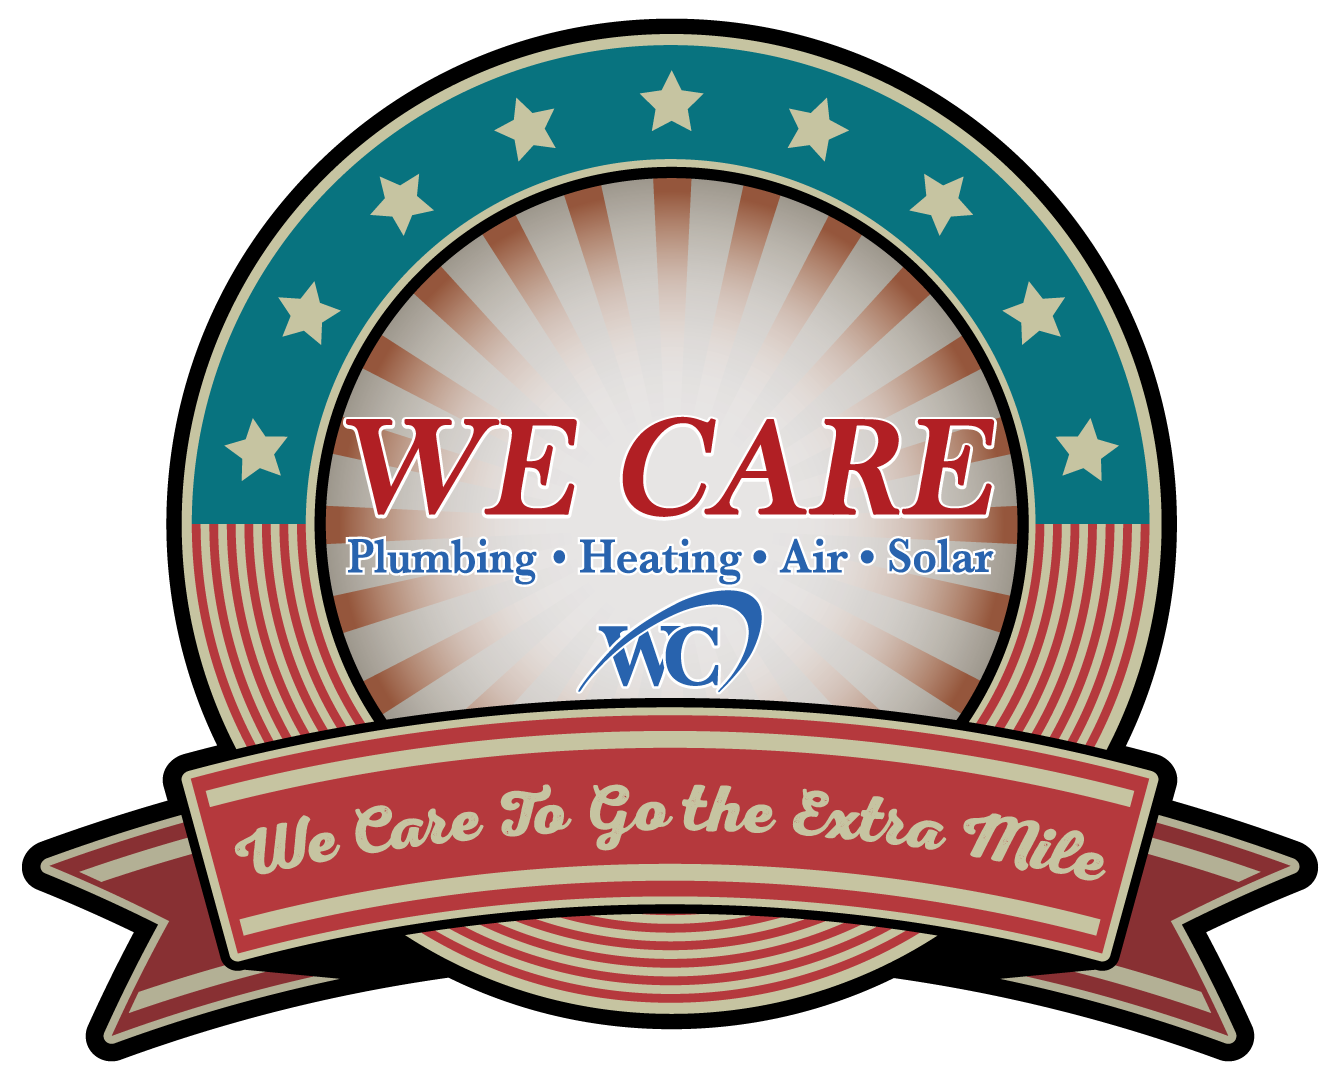 We care air the. Plumber clipart plumbing heating